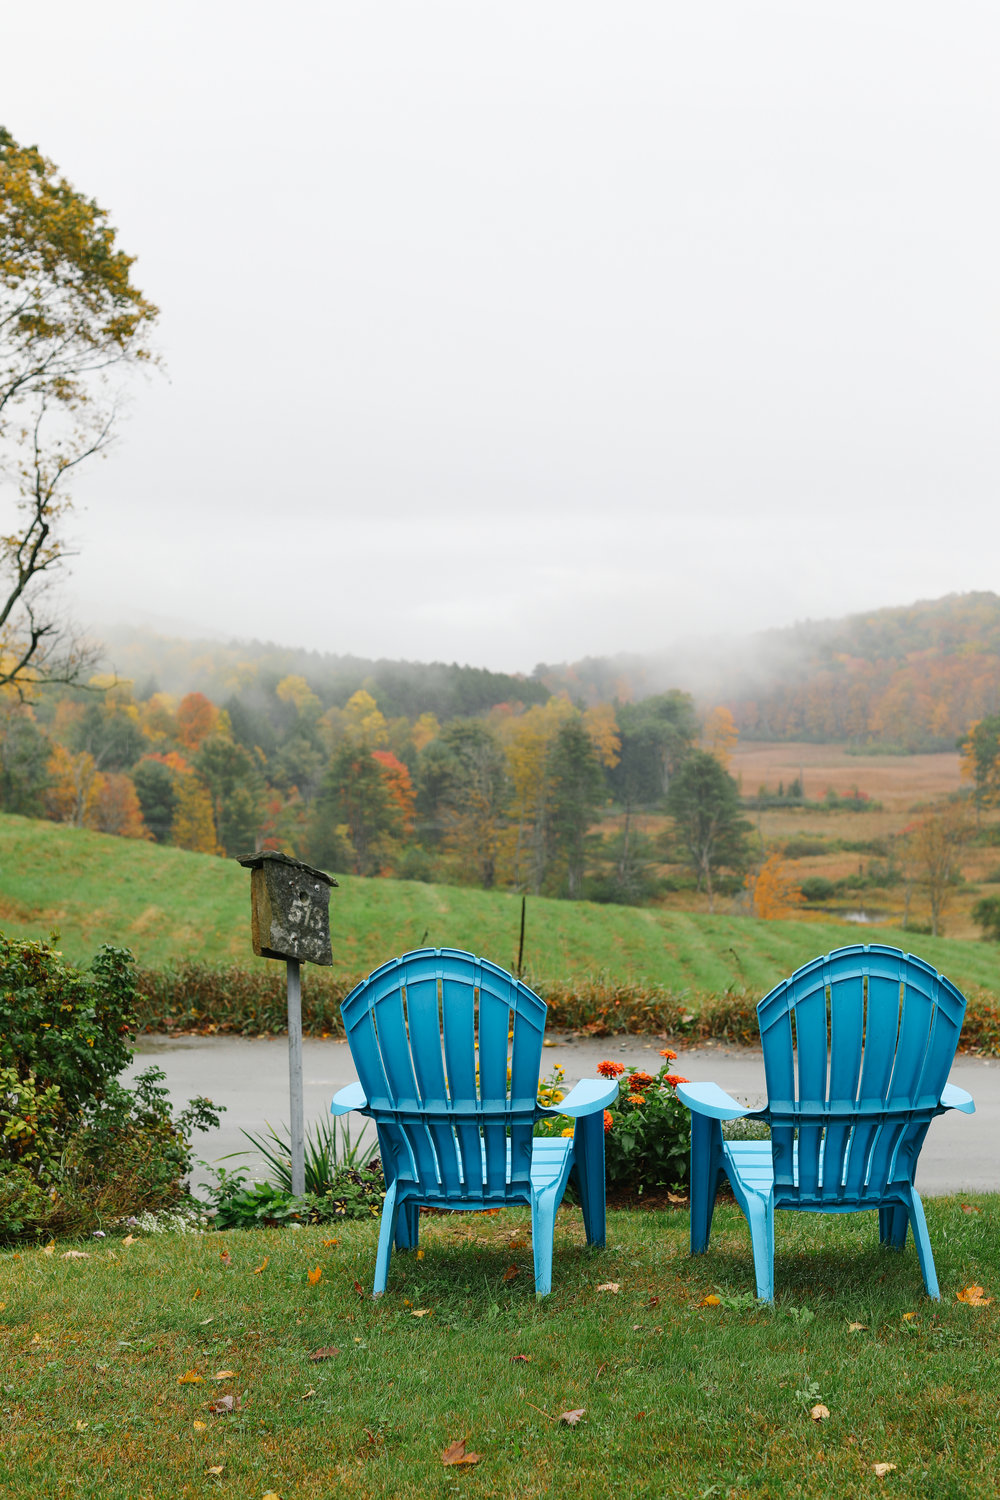 Pull up an adirondack and enjoy the view!